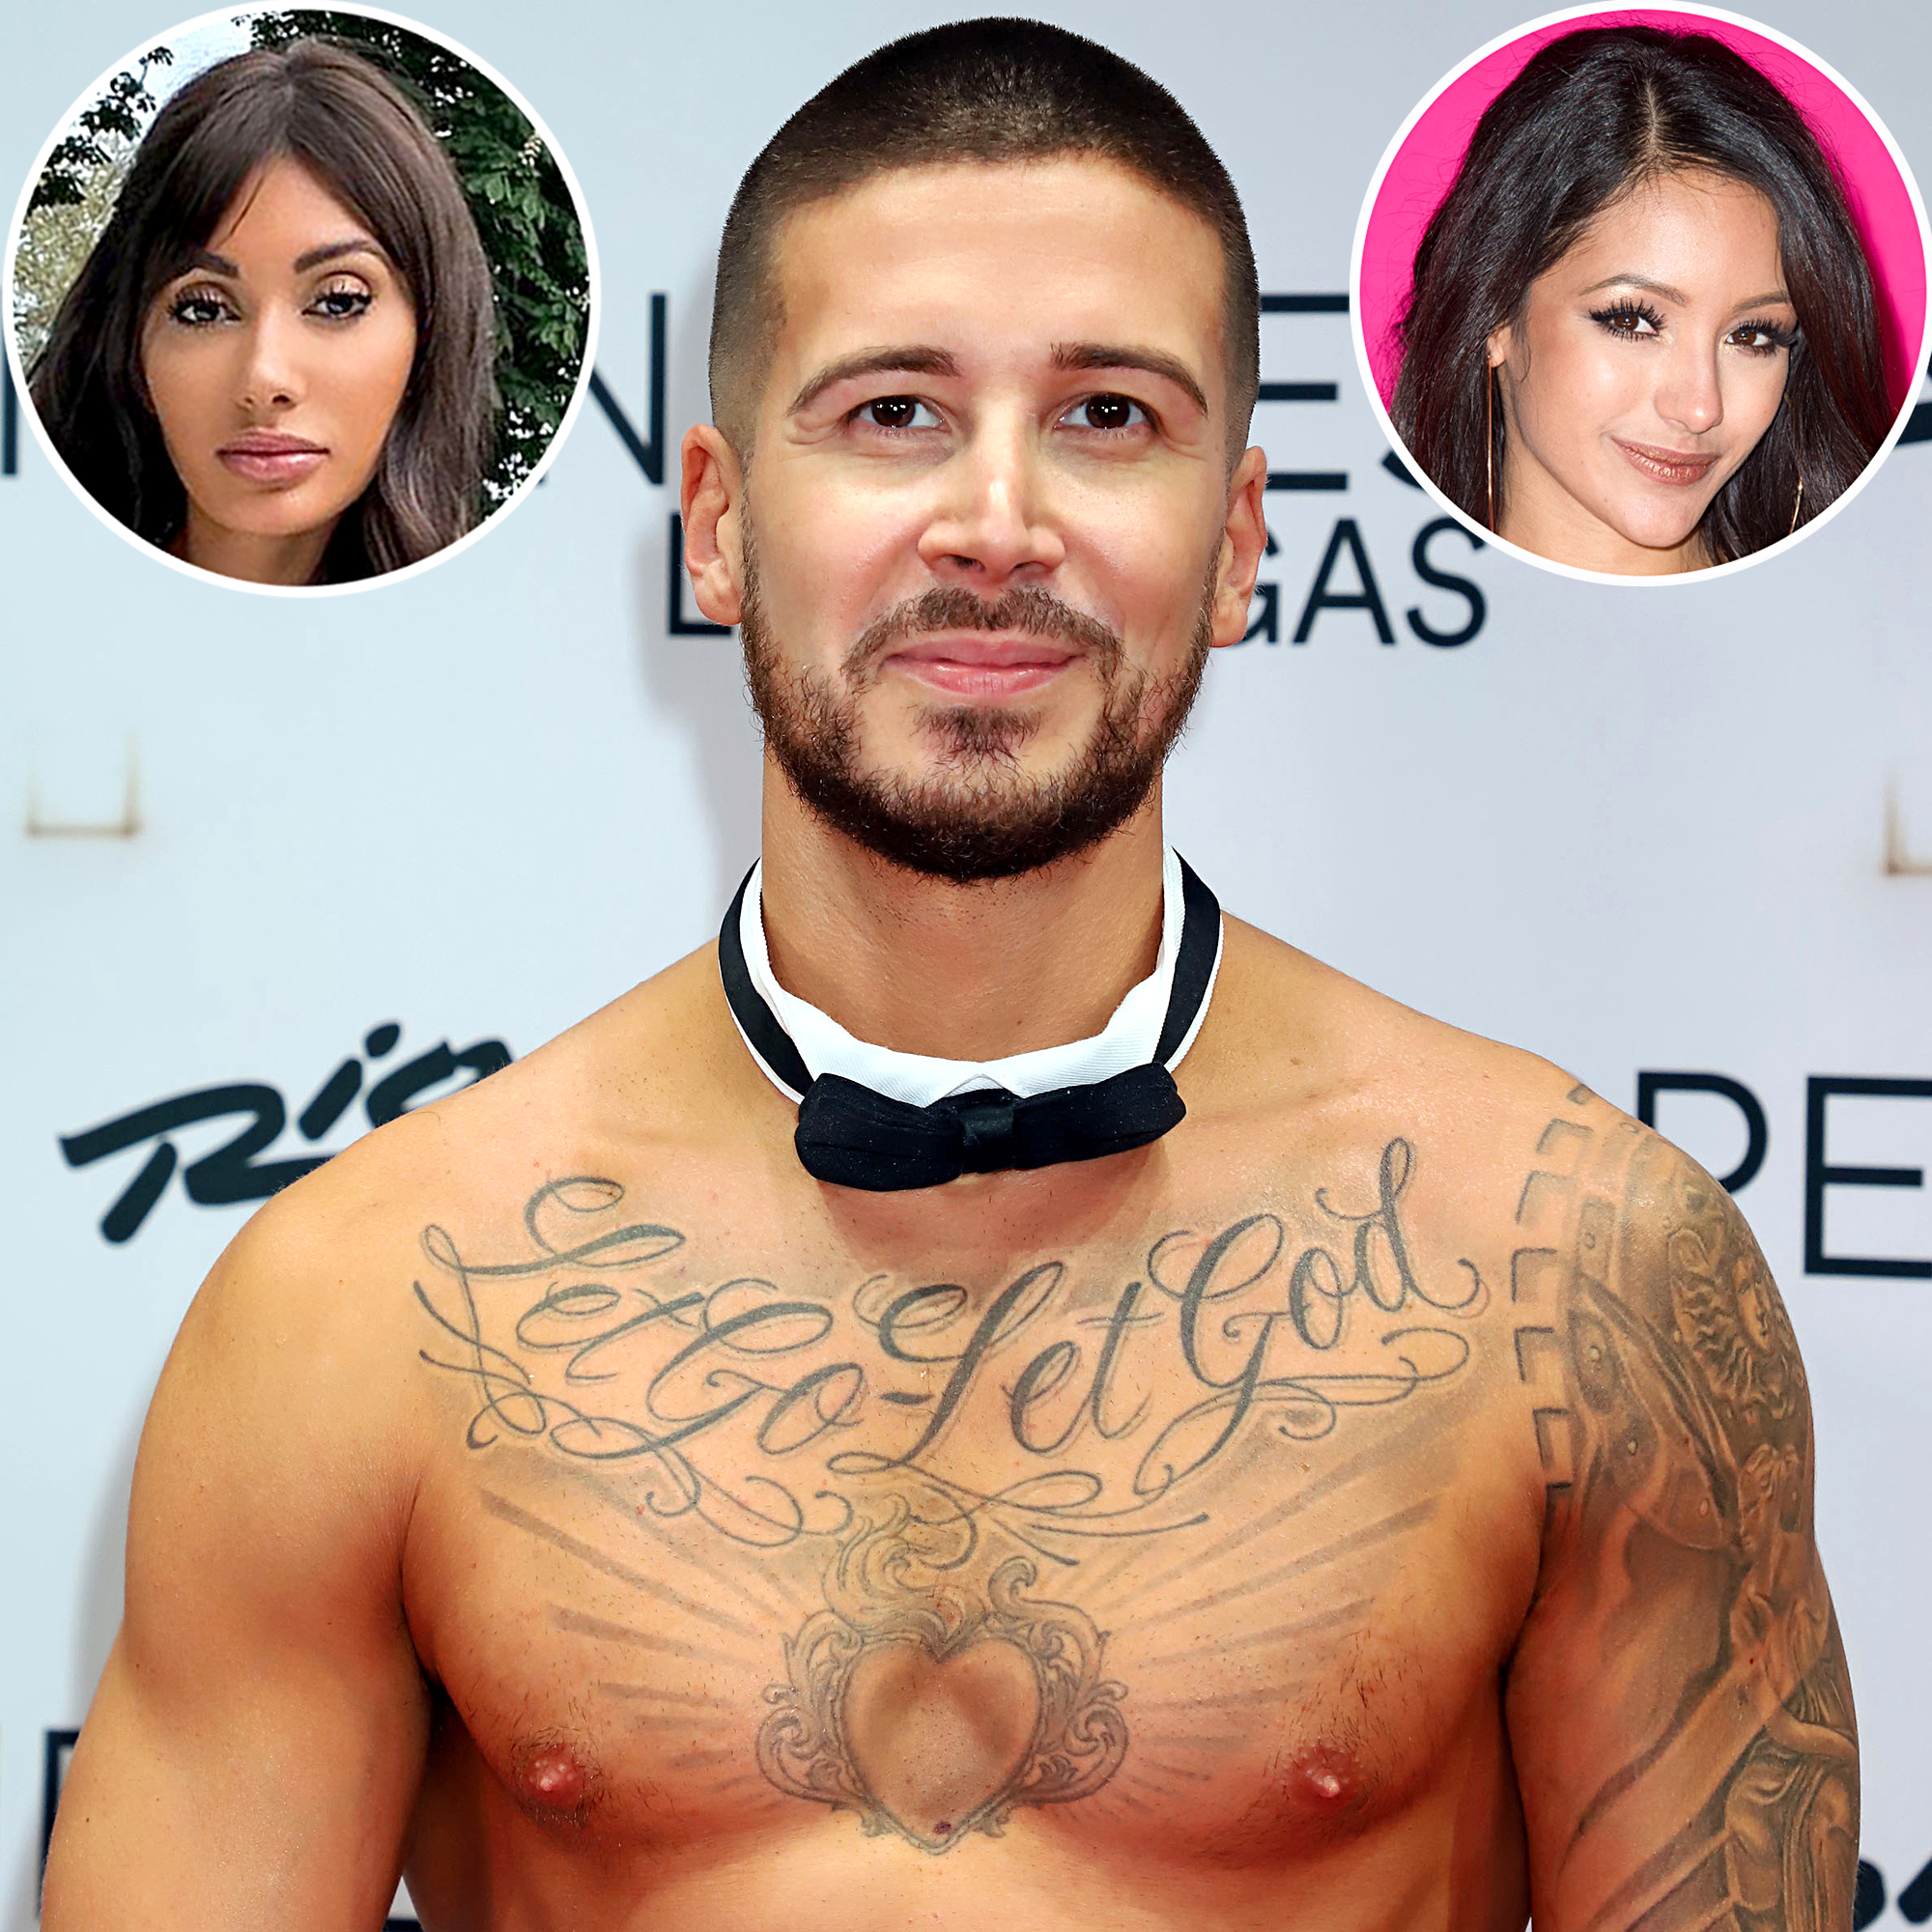 Jersey Shore's Vinny Guadagnino's Dating History: See His Girlfriends